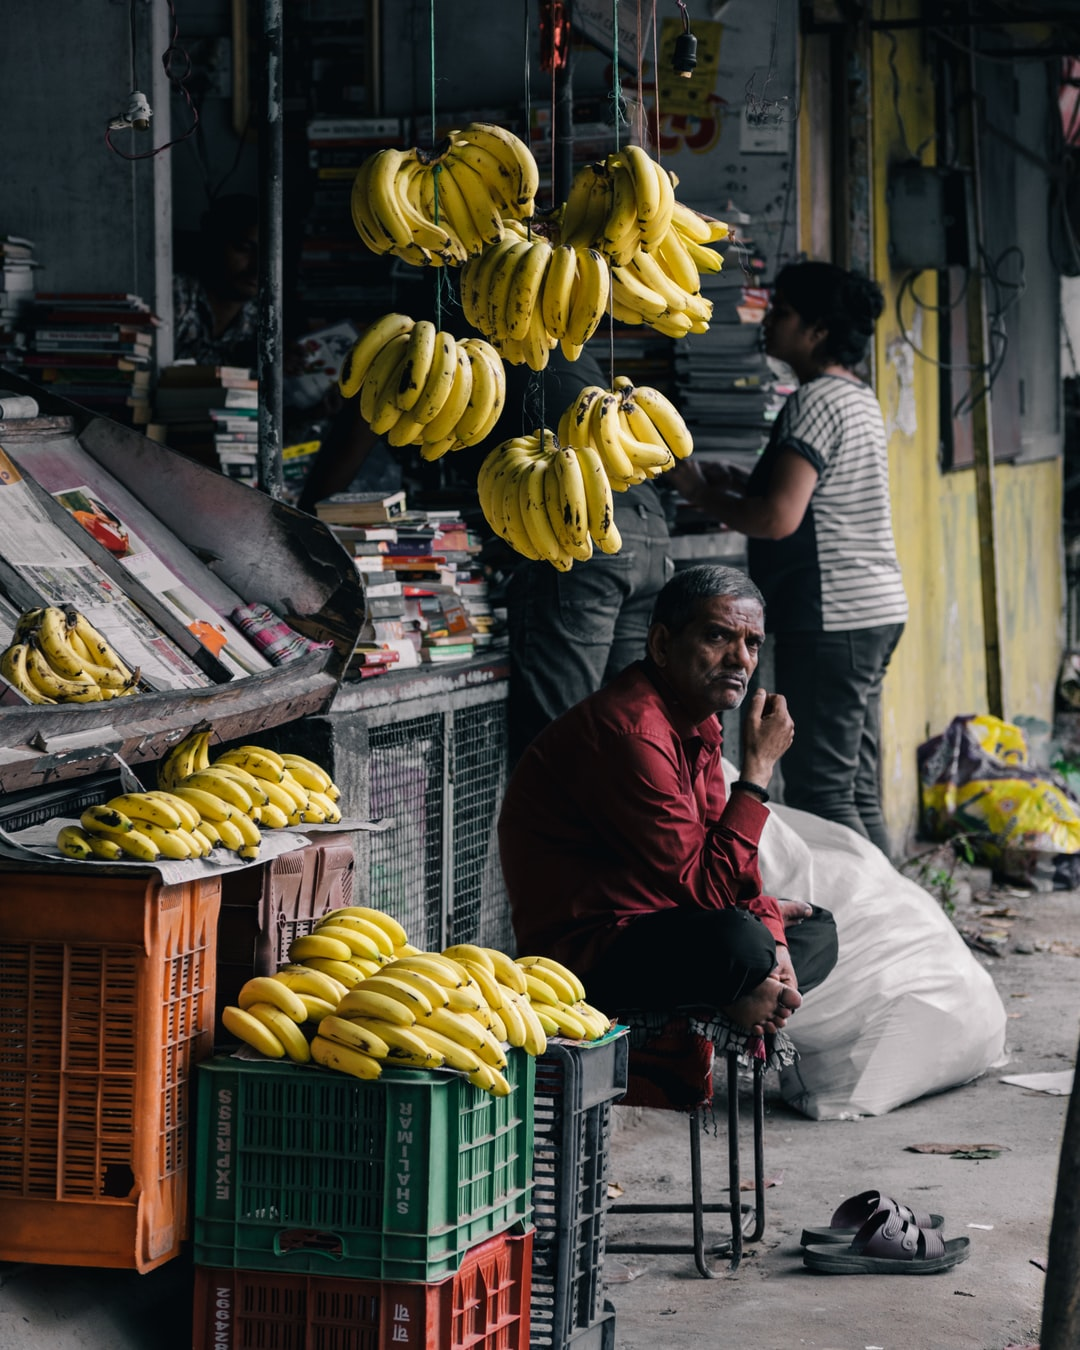 A banana store on the streets of Pune, India. Most local street vendors have these roadside shops, which really seem to be built from scrap wood, plastic containers and a lot of passion.